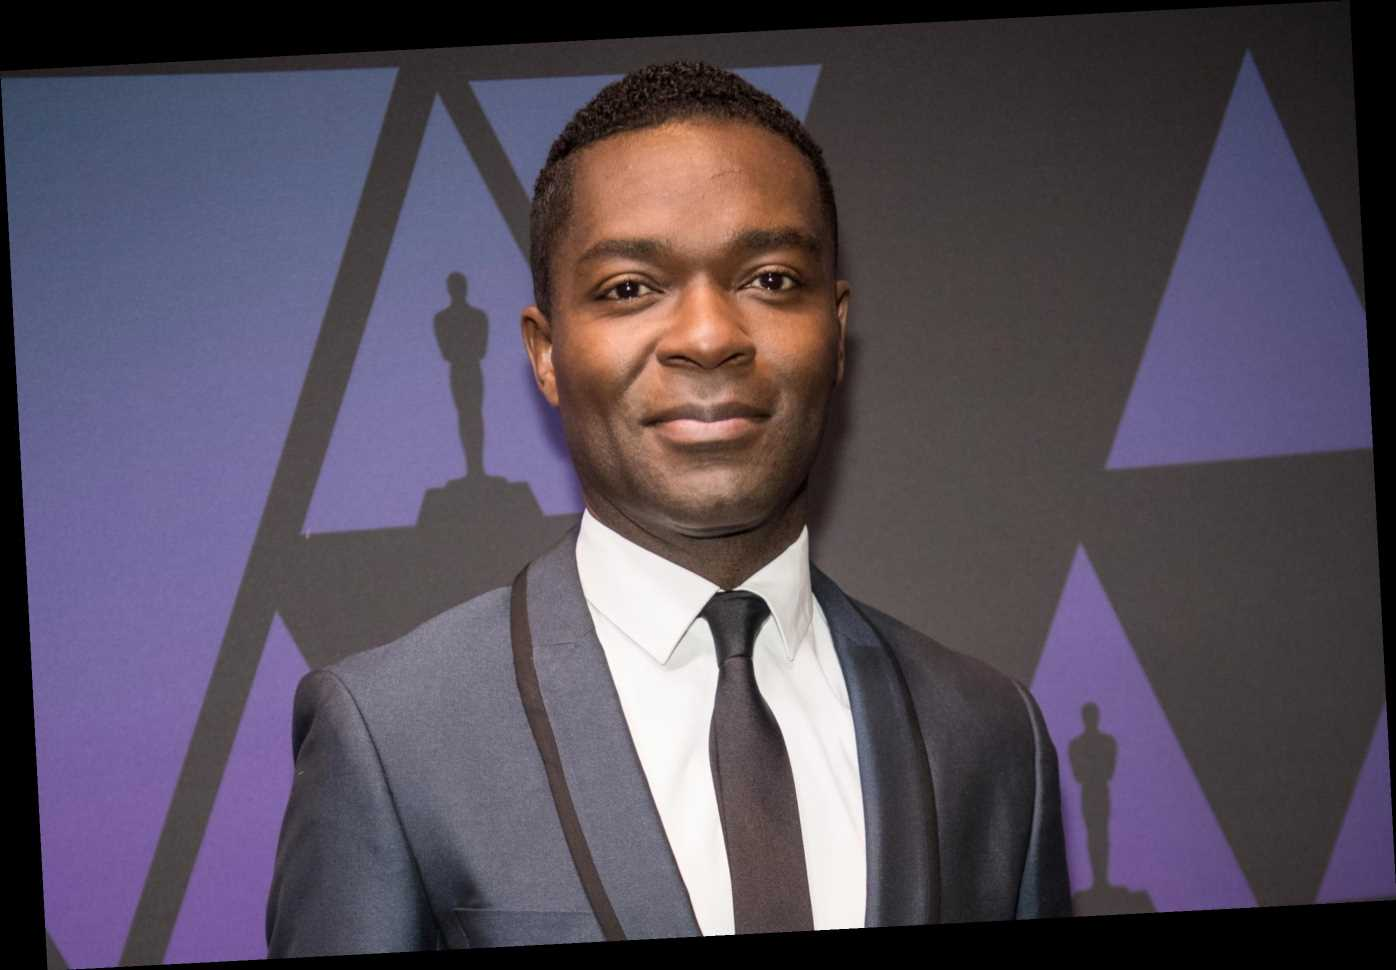 David Oyelowo to star in Showtime series based on Bill Clinton, James Patterson book